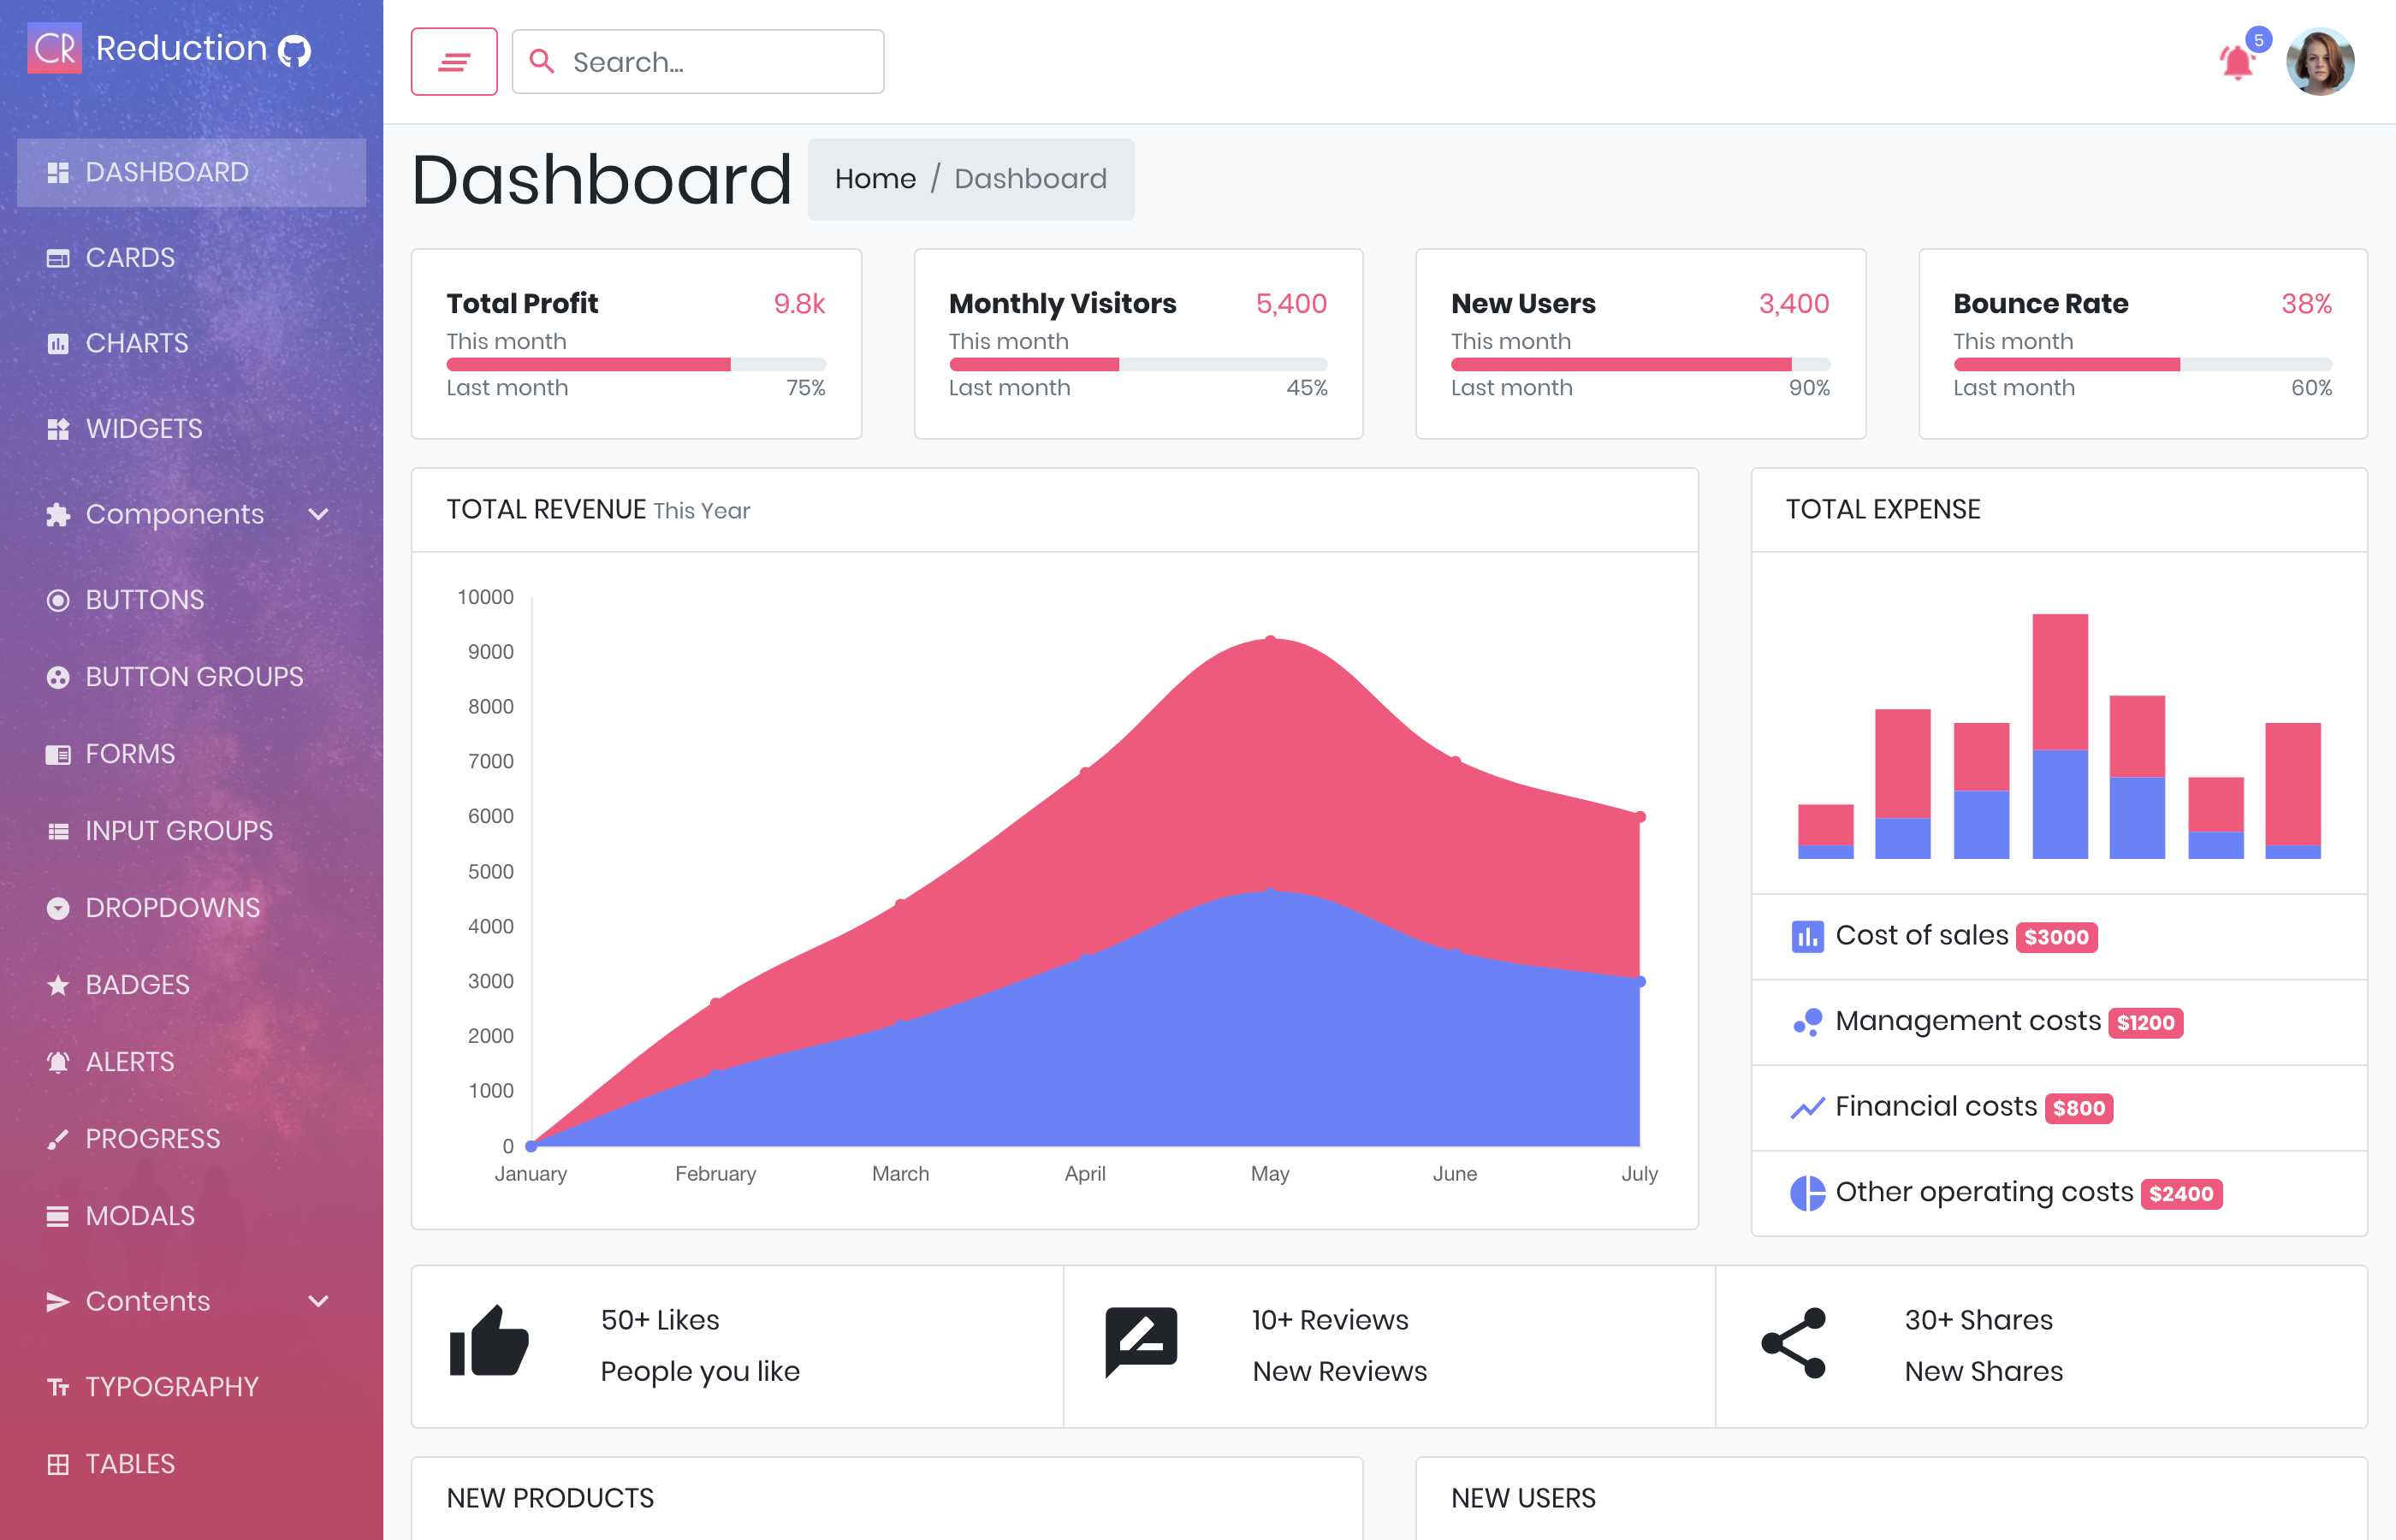 Reduction admin templates